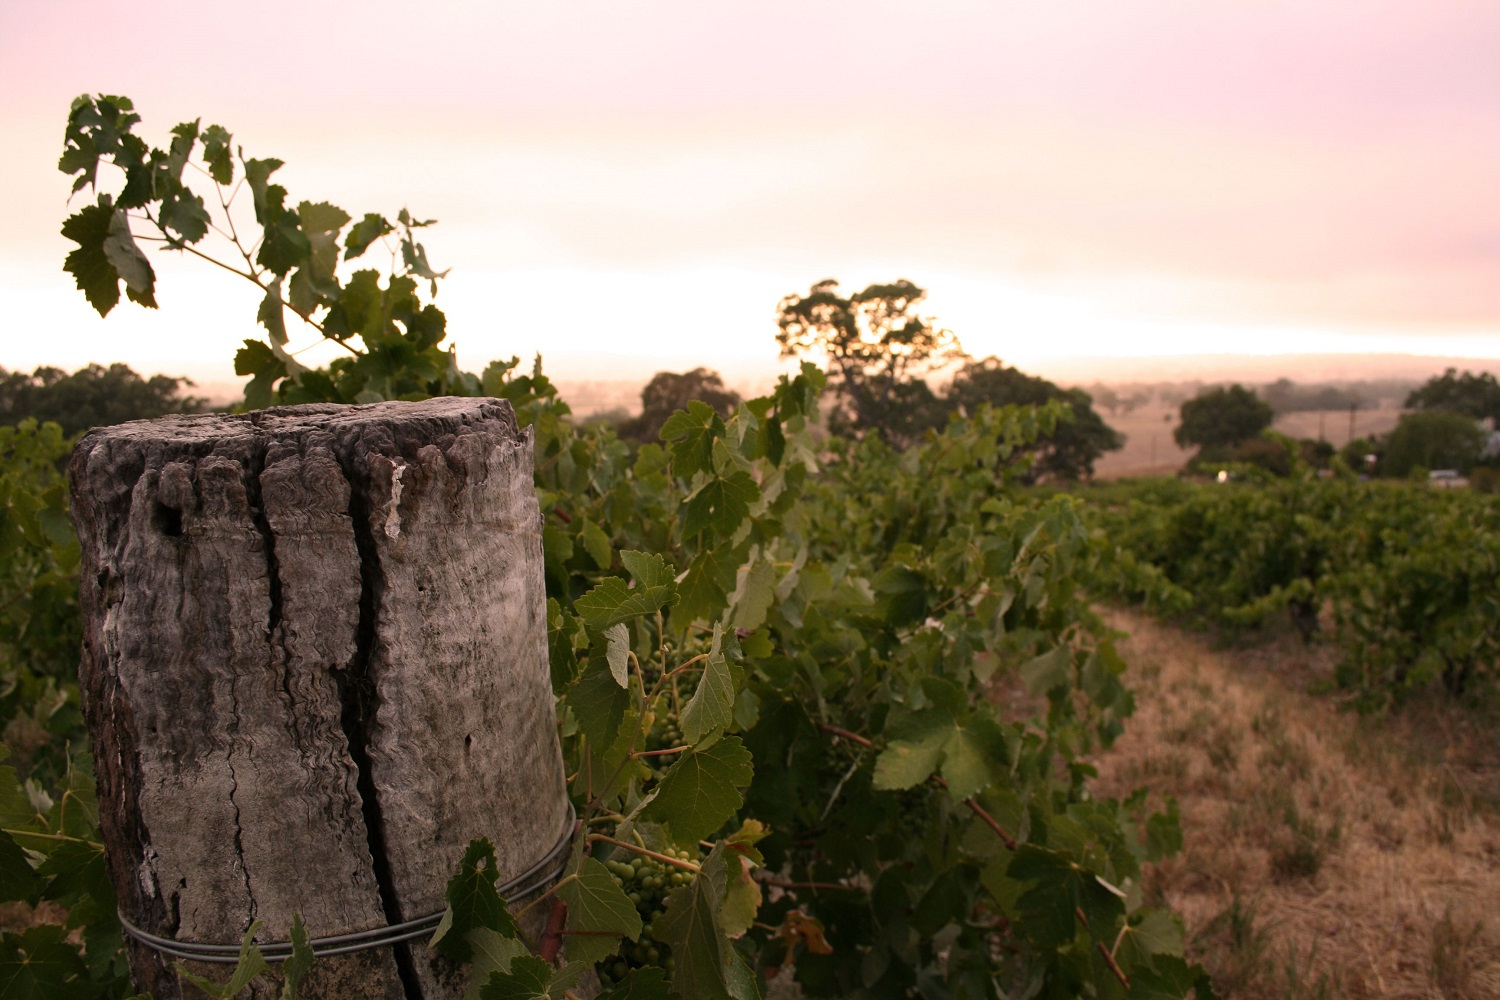 Shiraz vines in the Barossa